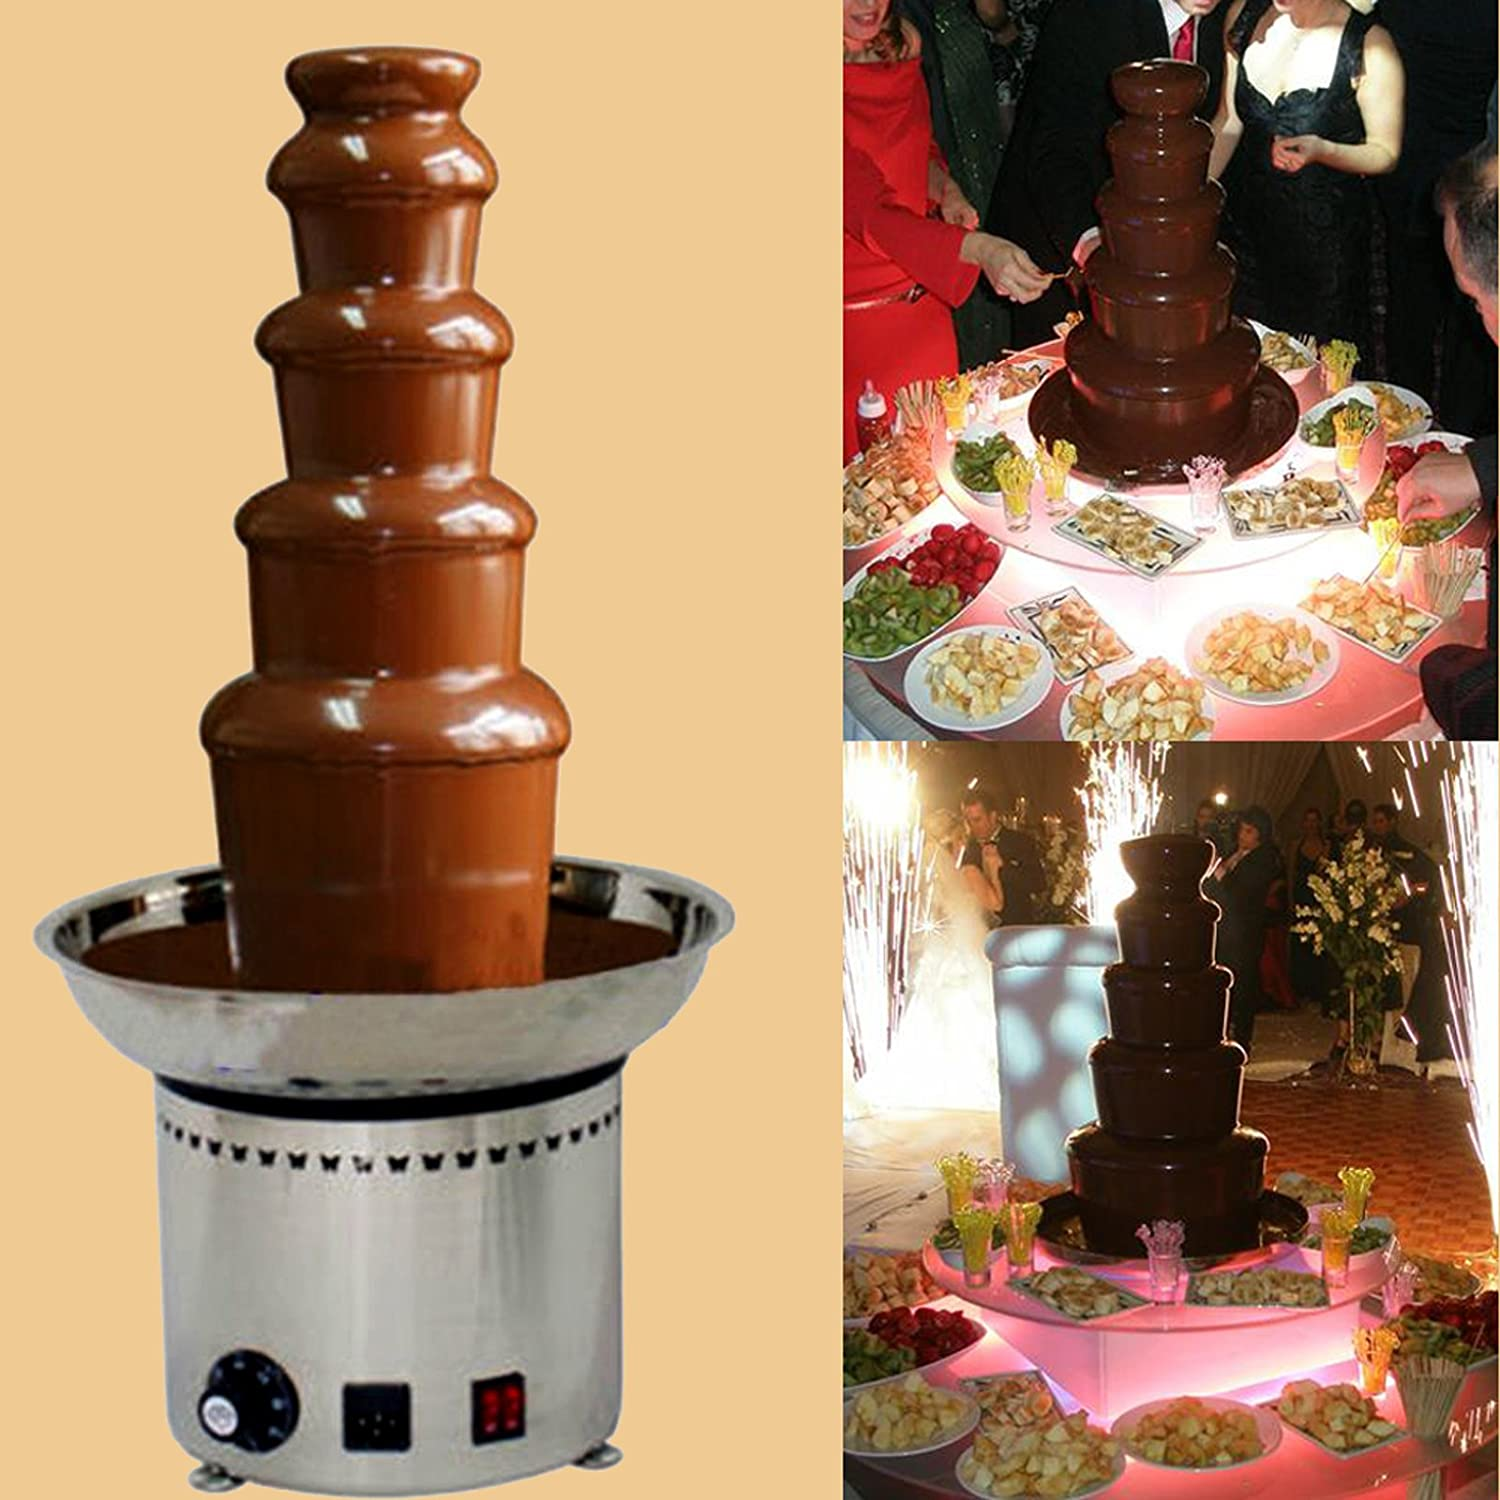 Amazon.com: CO-Z Large Chocolate Fondue Fountain 27' 5-Tier All ...